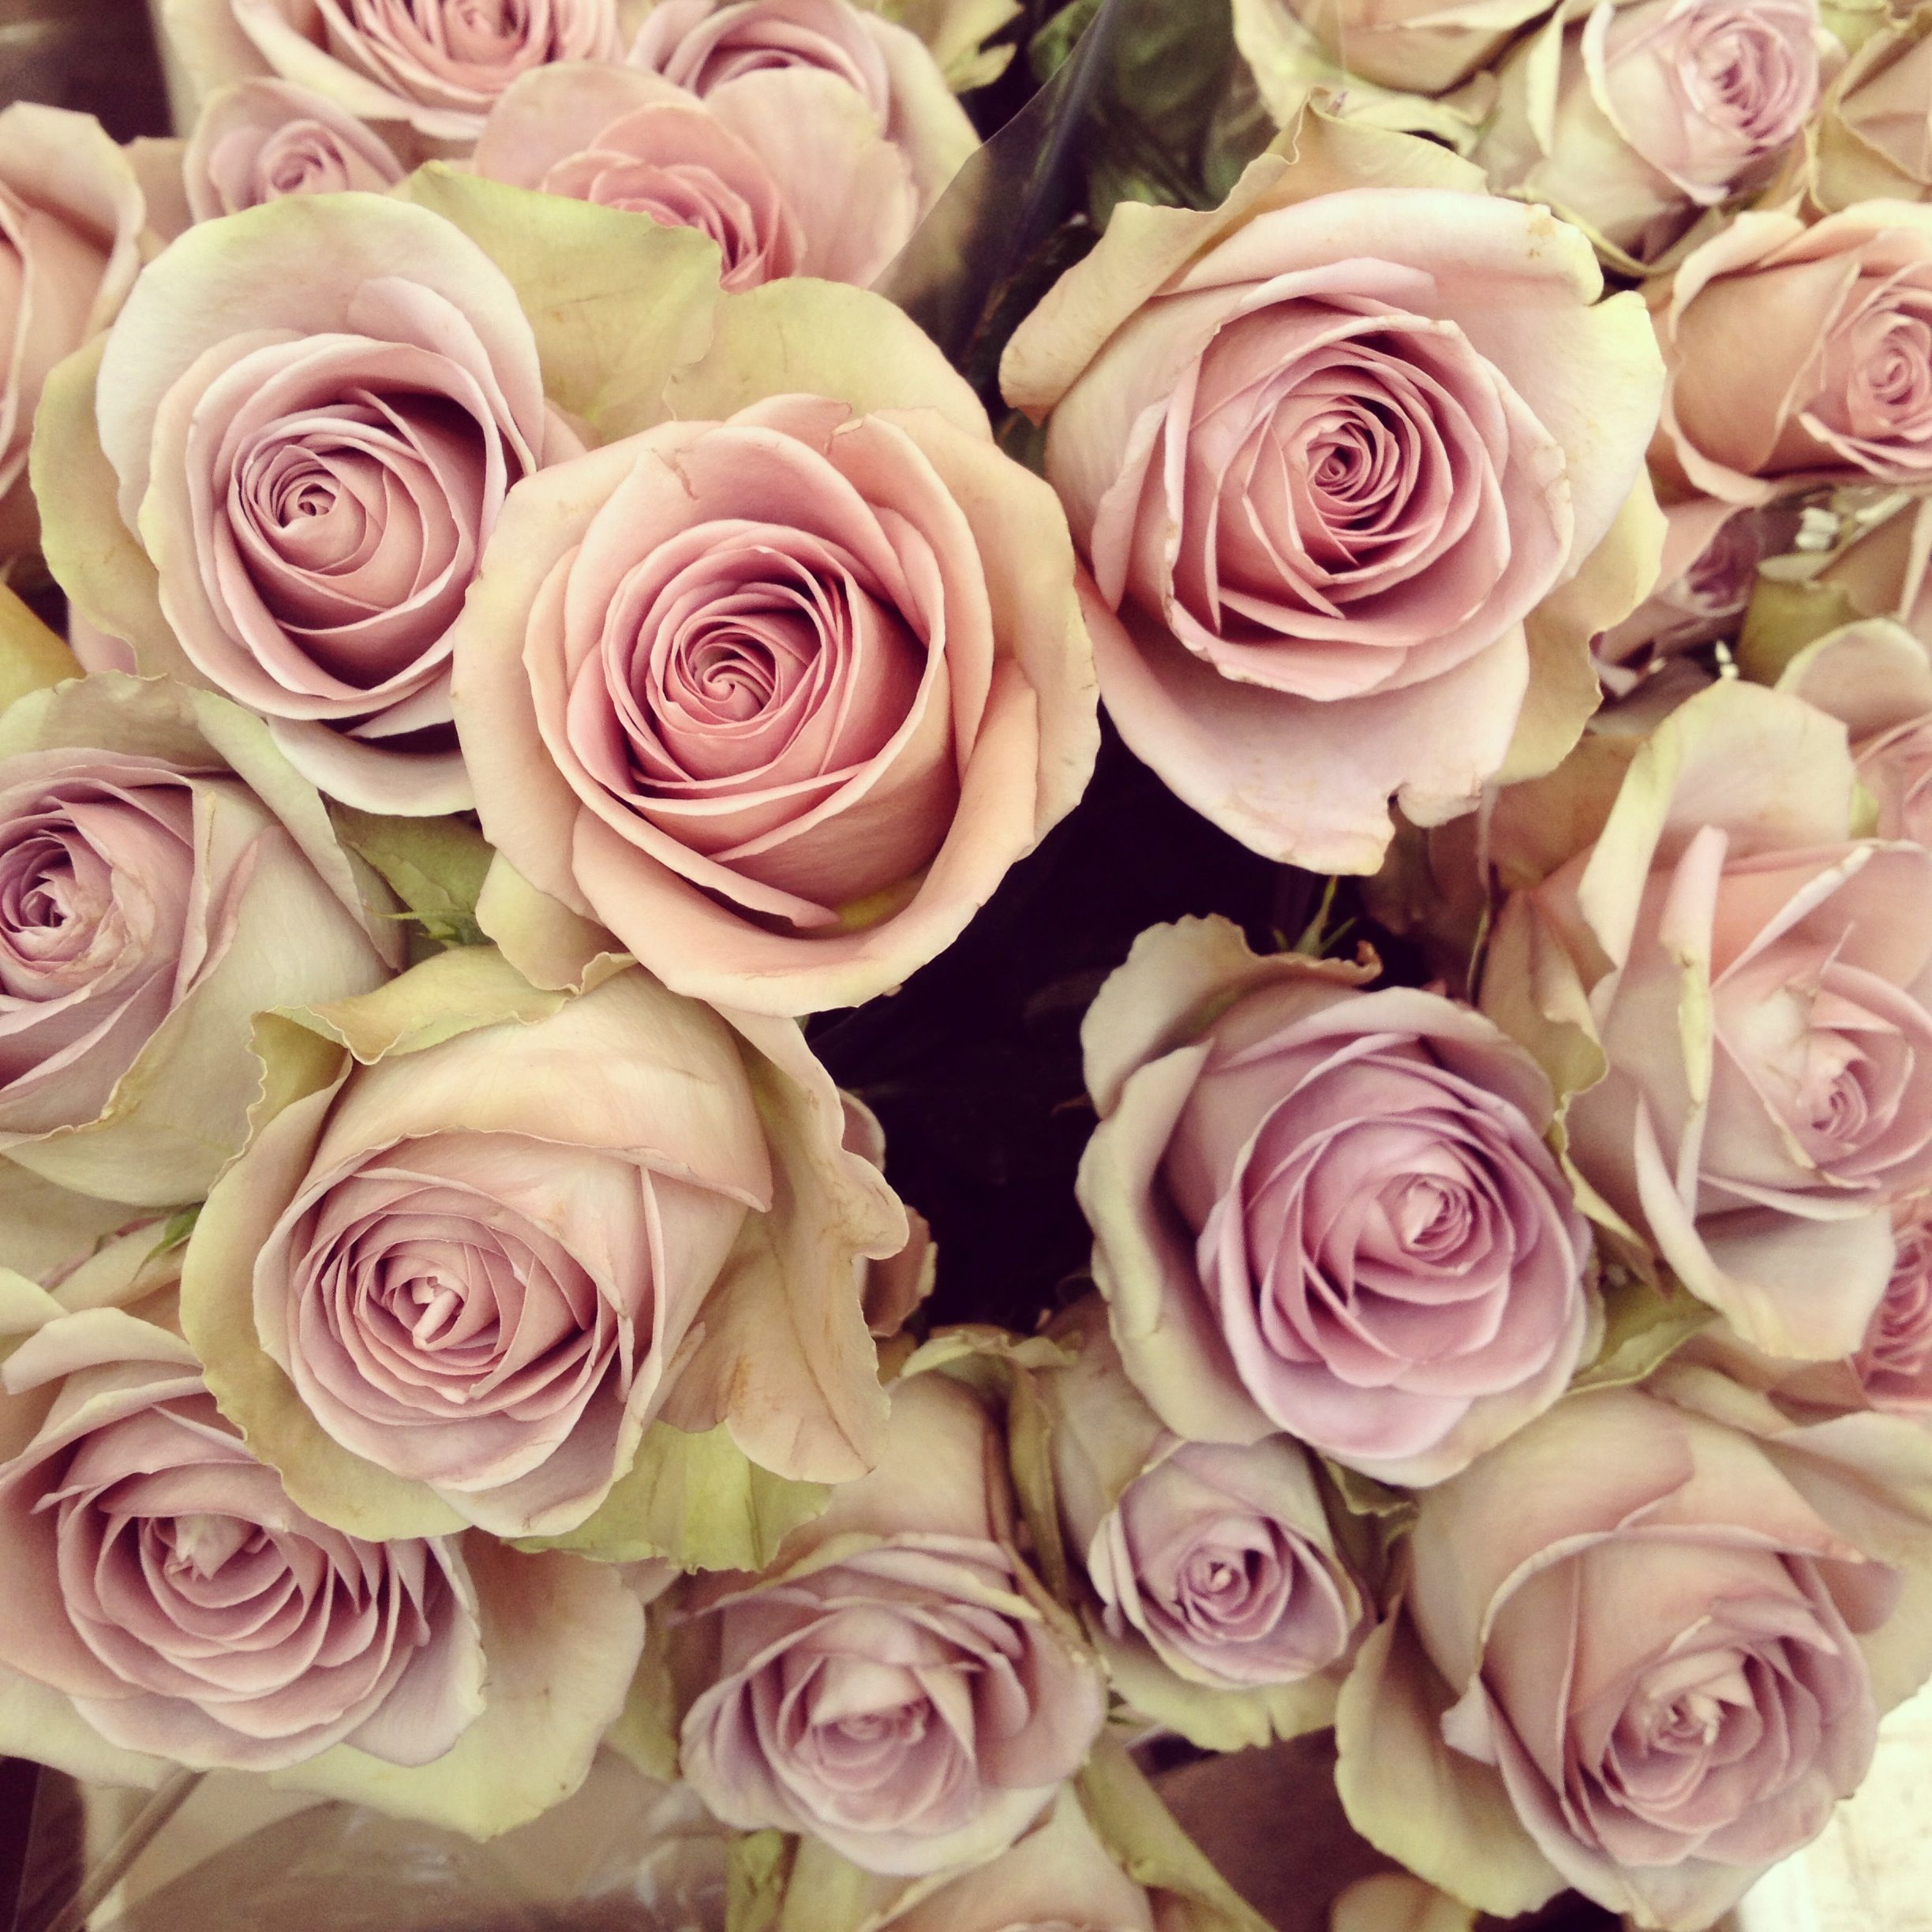 Favourite Dusky Pink Roses From Colombia Flower Market Dreaming